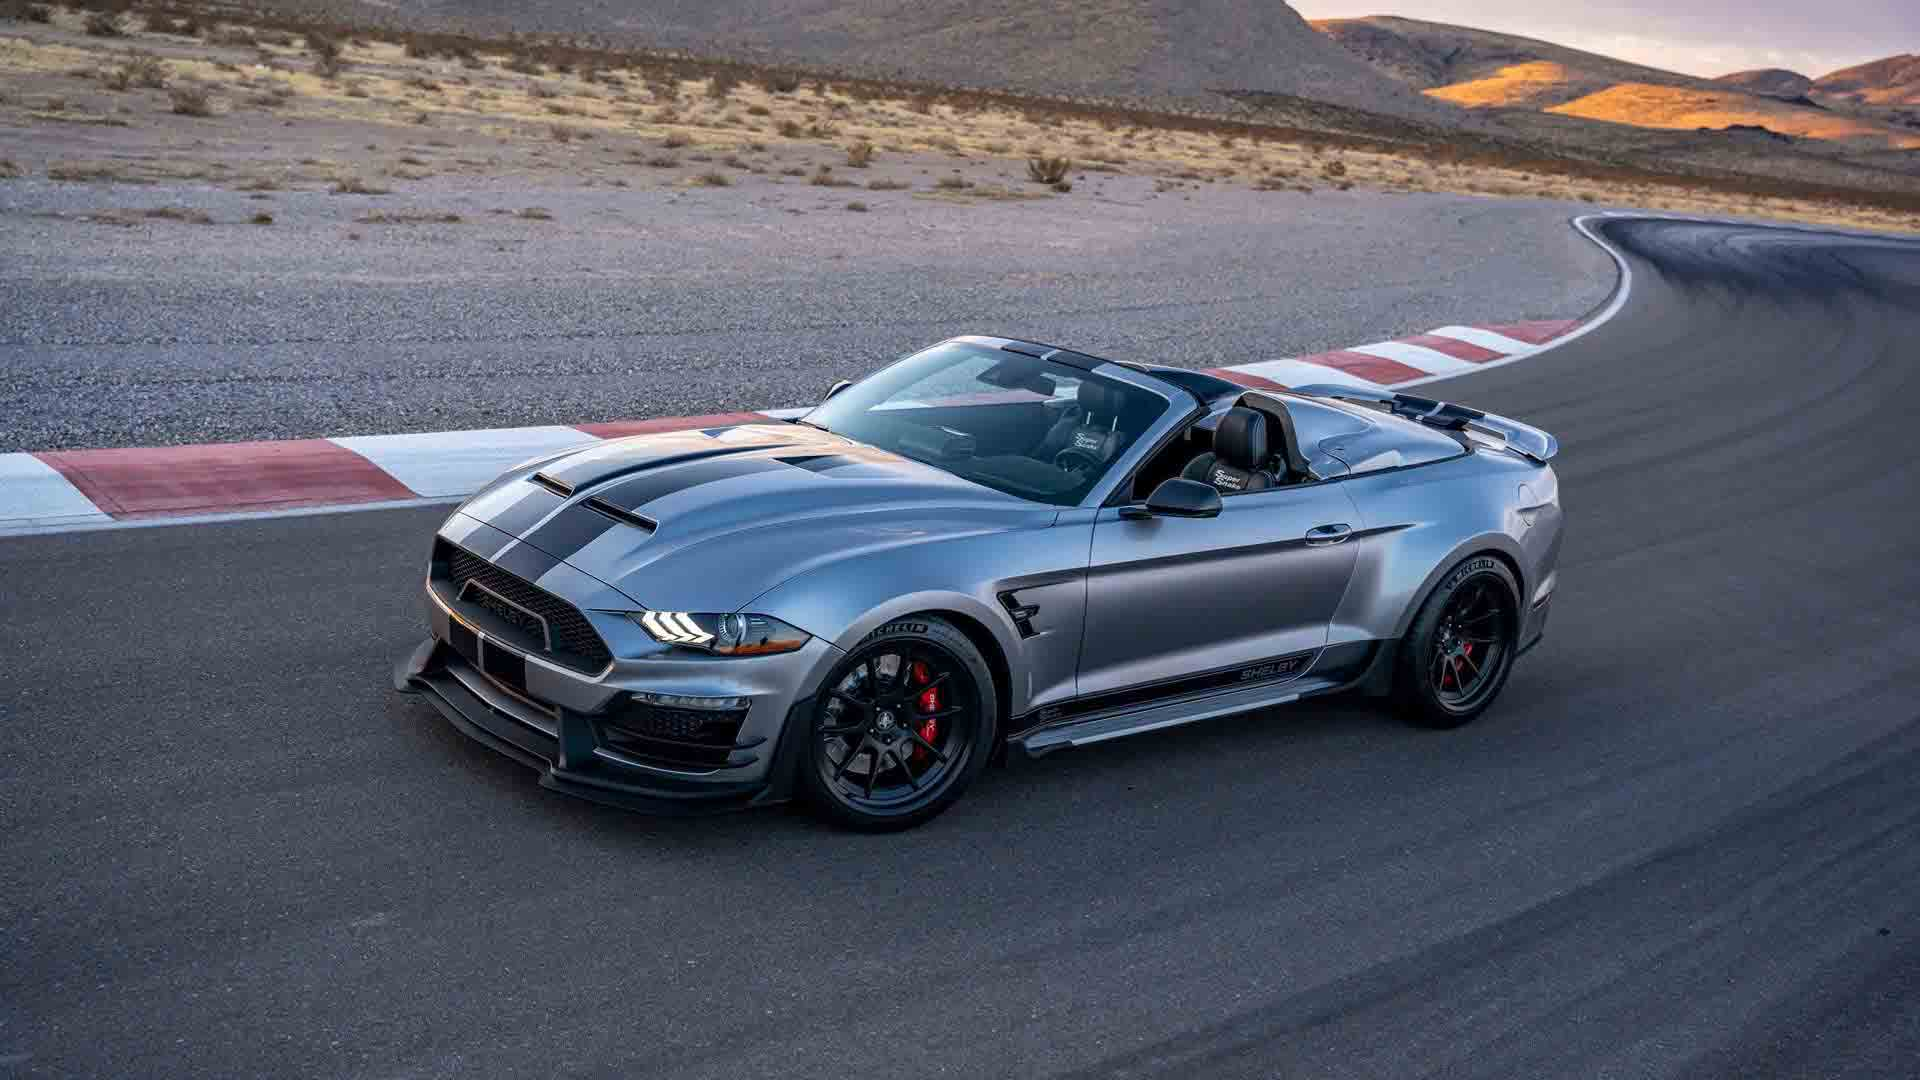 Shelby Super Snake Speedster descapotable